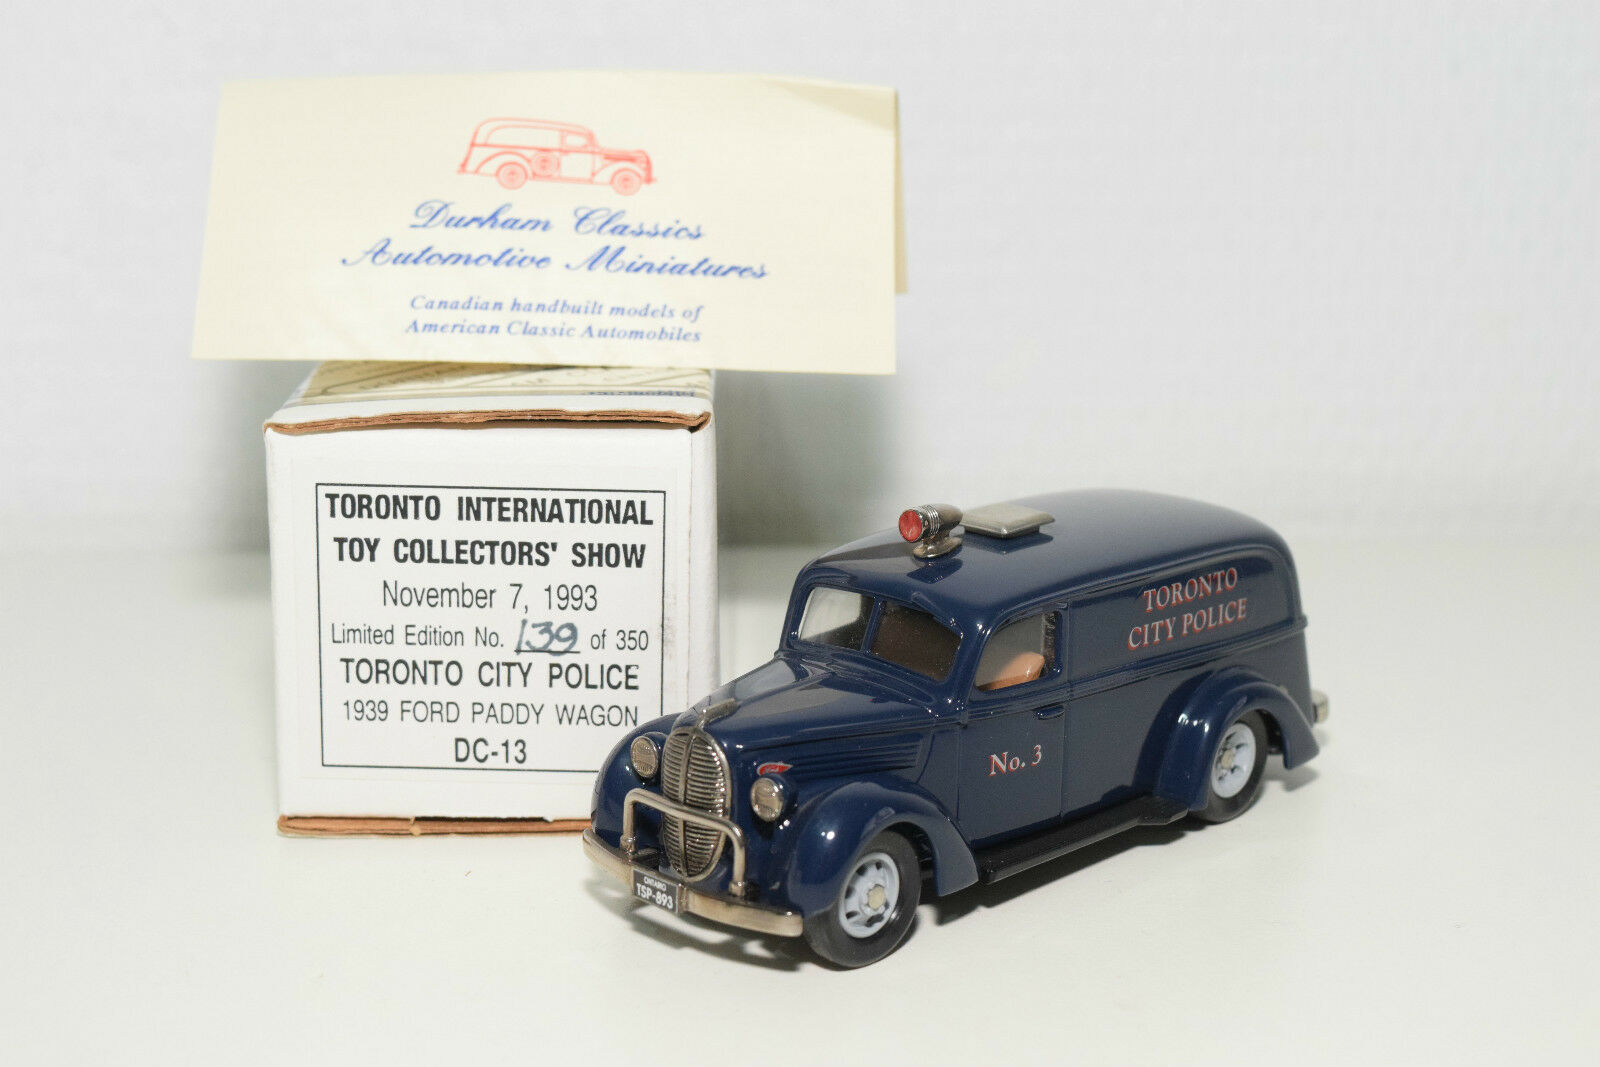 DURHAM DC-13 DC 13  FORD PADDY WAGON TorNTO CITY POLICE TOY SHOW 1993 MINT BOXED  bienvenue pour acheter